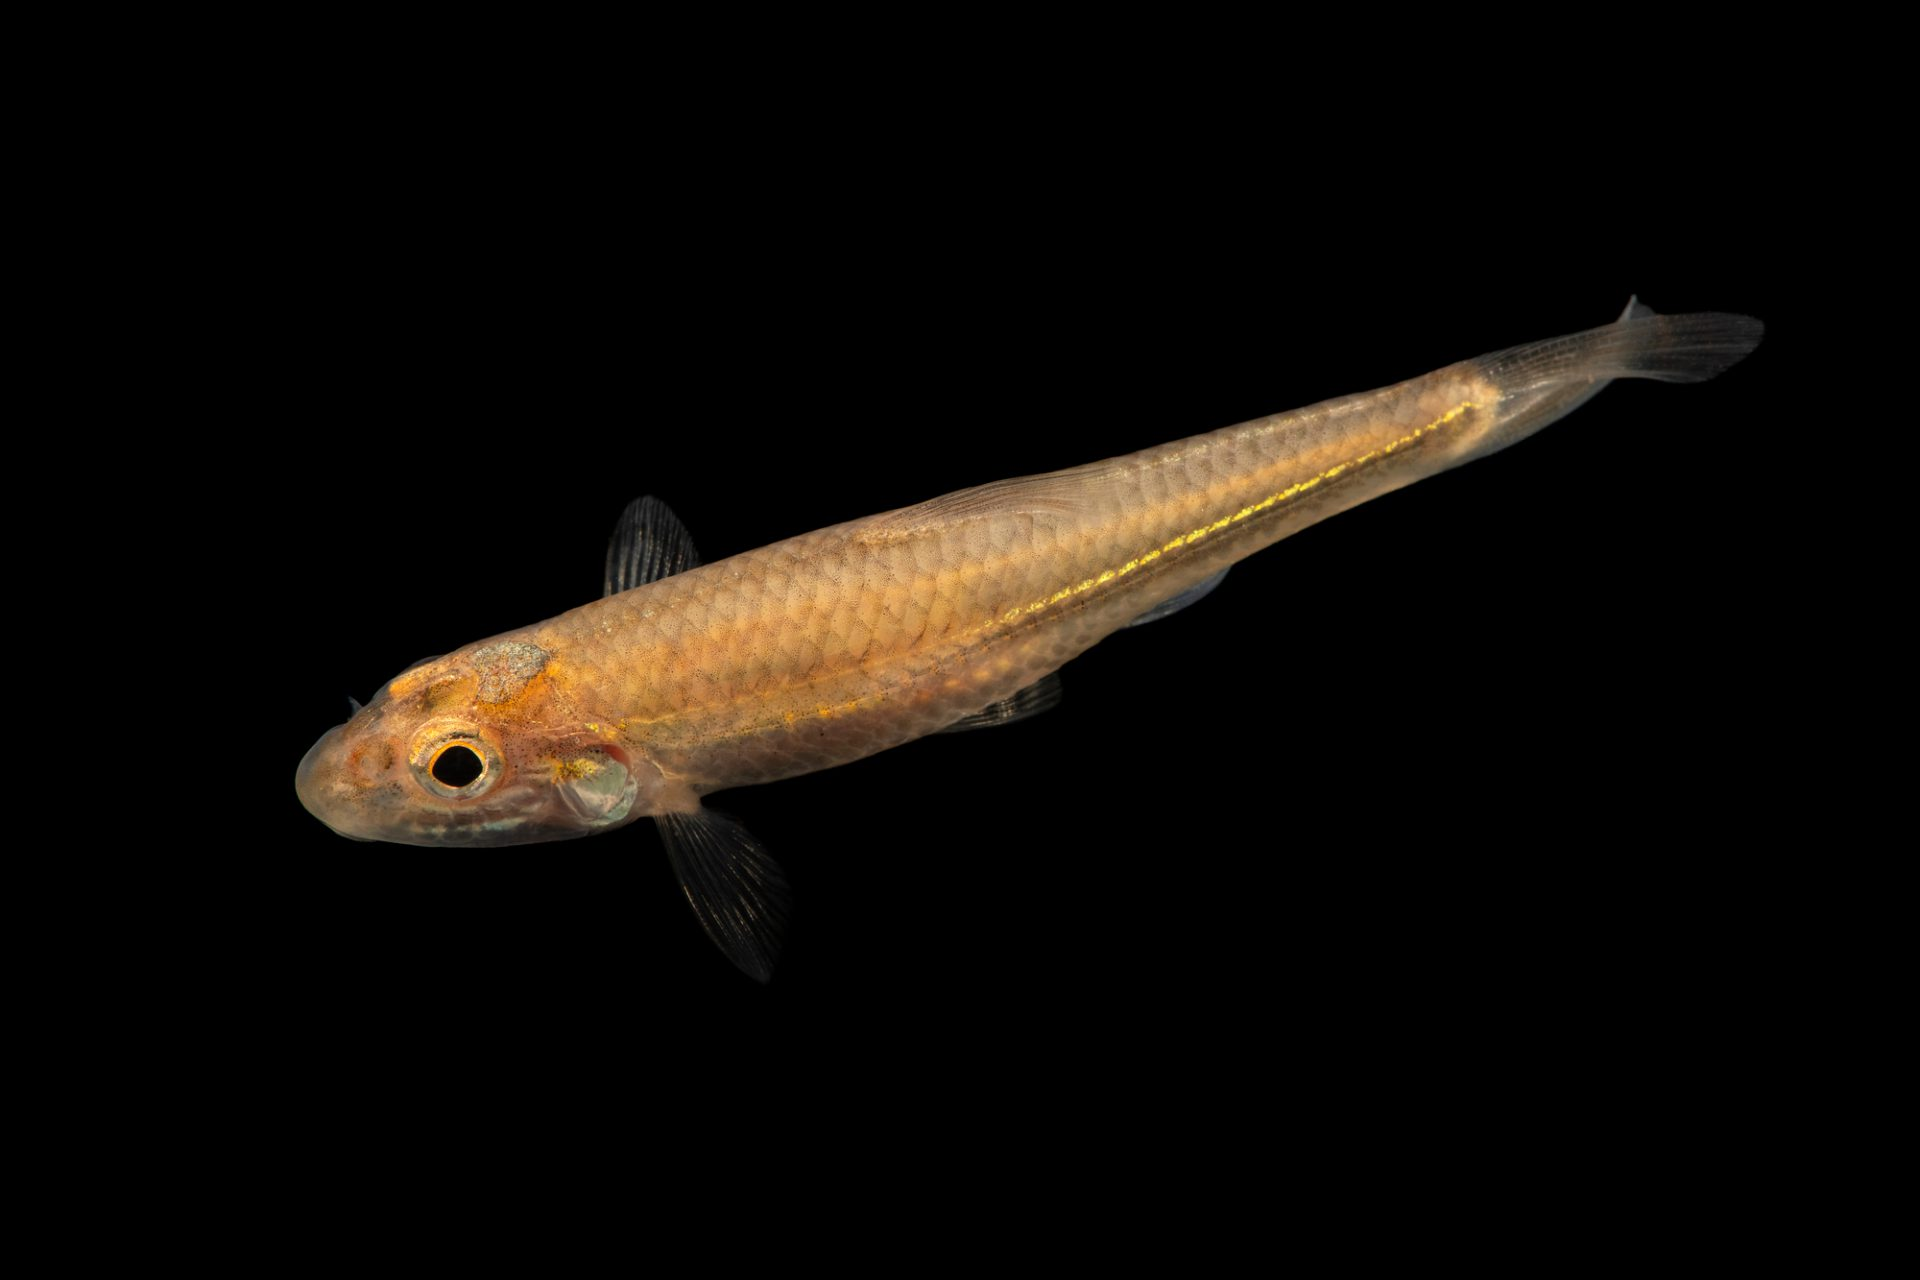 Photo: A Longjaw minnow (Ericymba amplamala) at the Auburn University Natural History Museum.